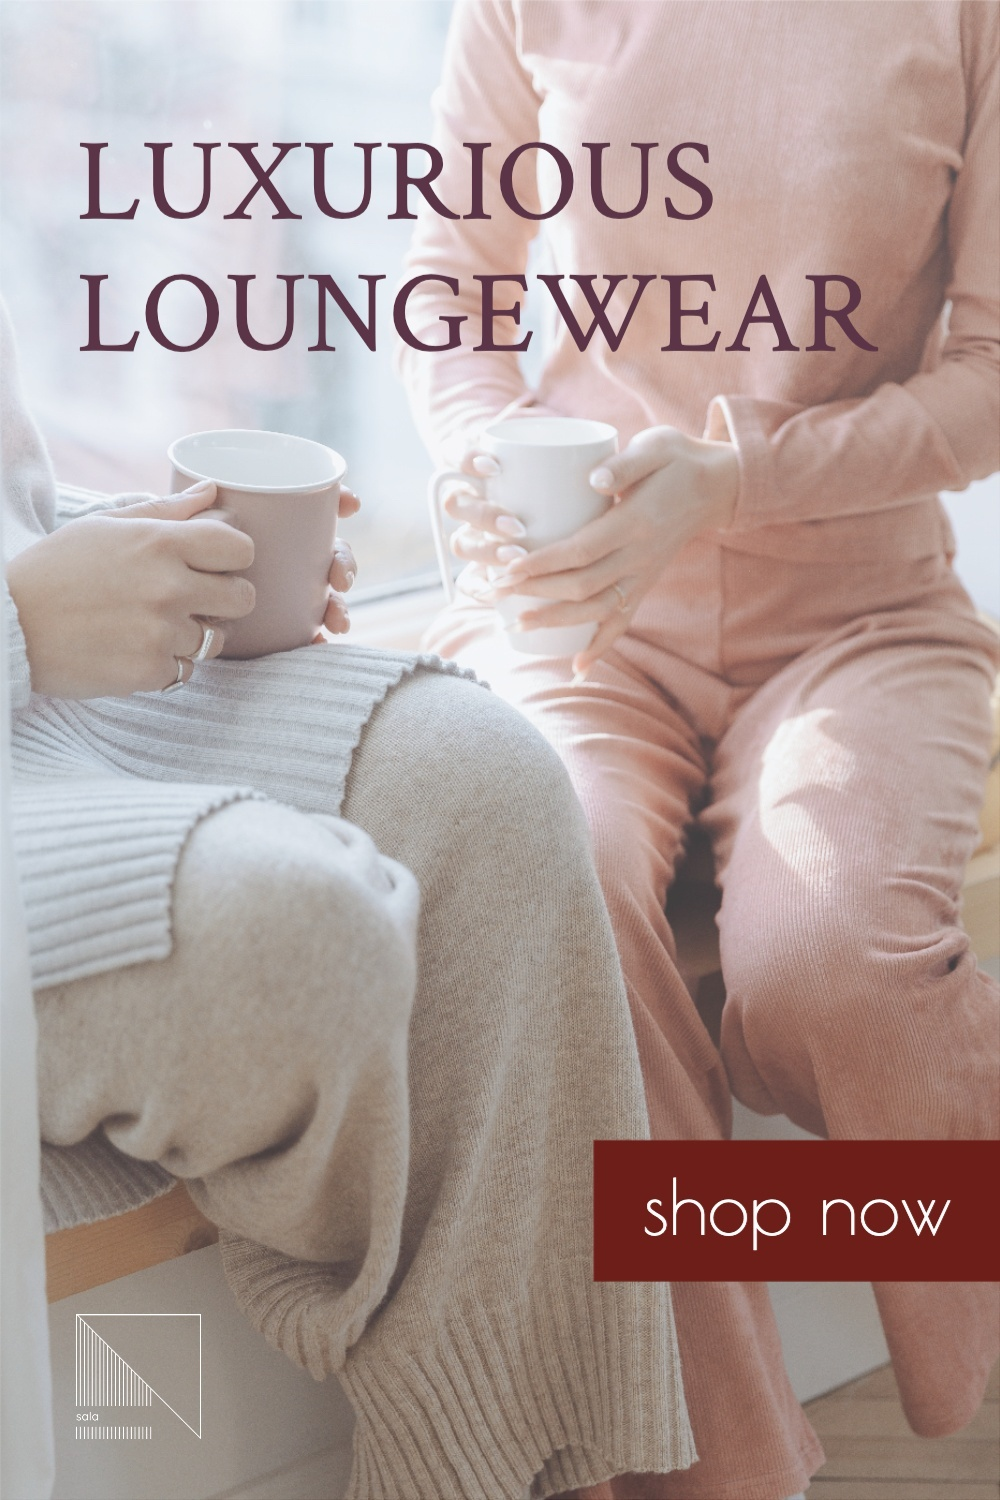 Women's fashion Pinterest Pin image created by Tailwind using a Tailwind Create design template in 2021.